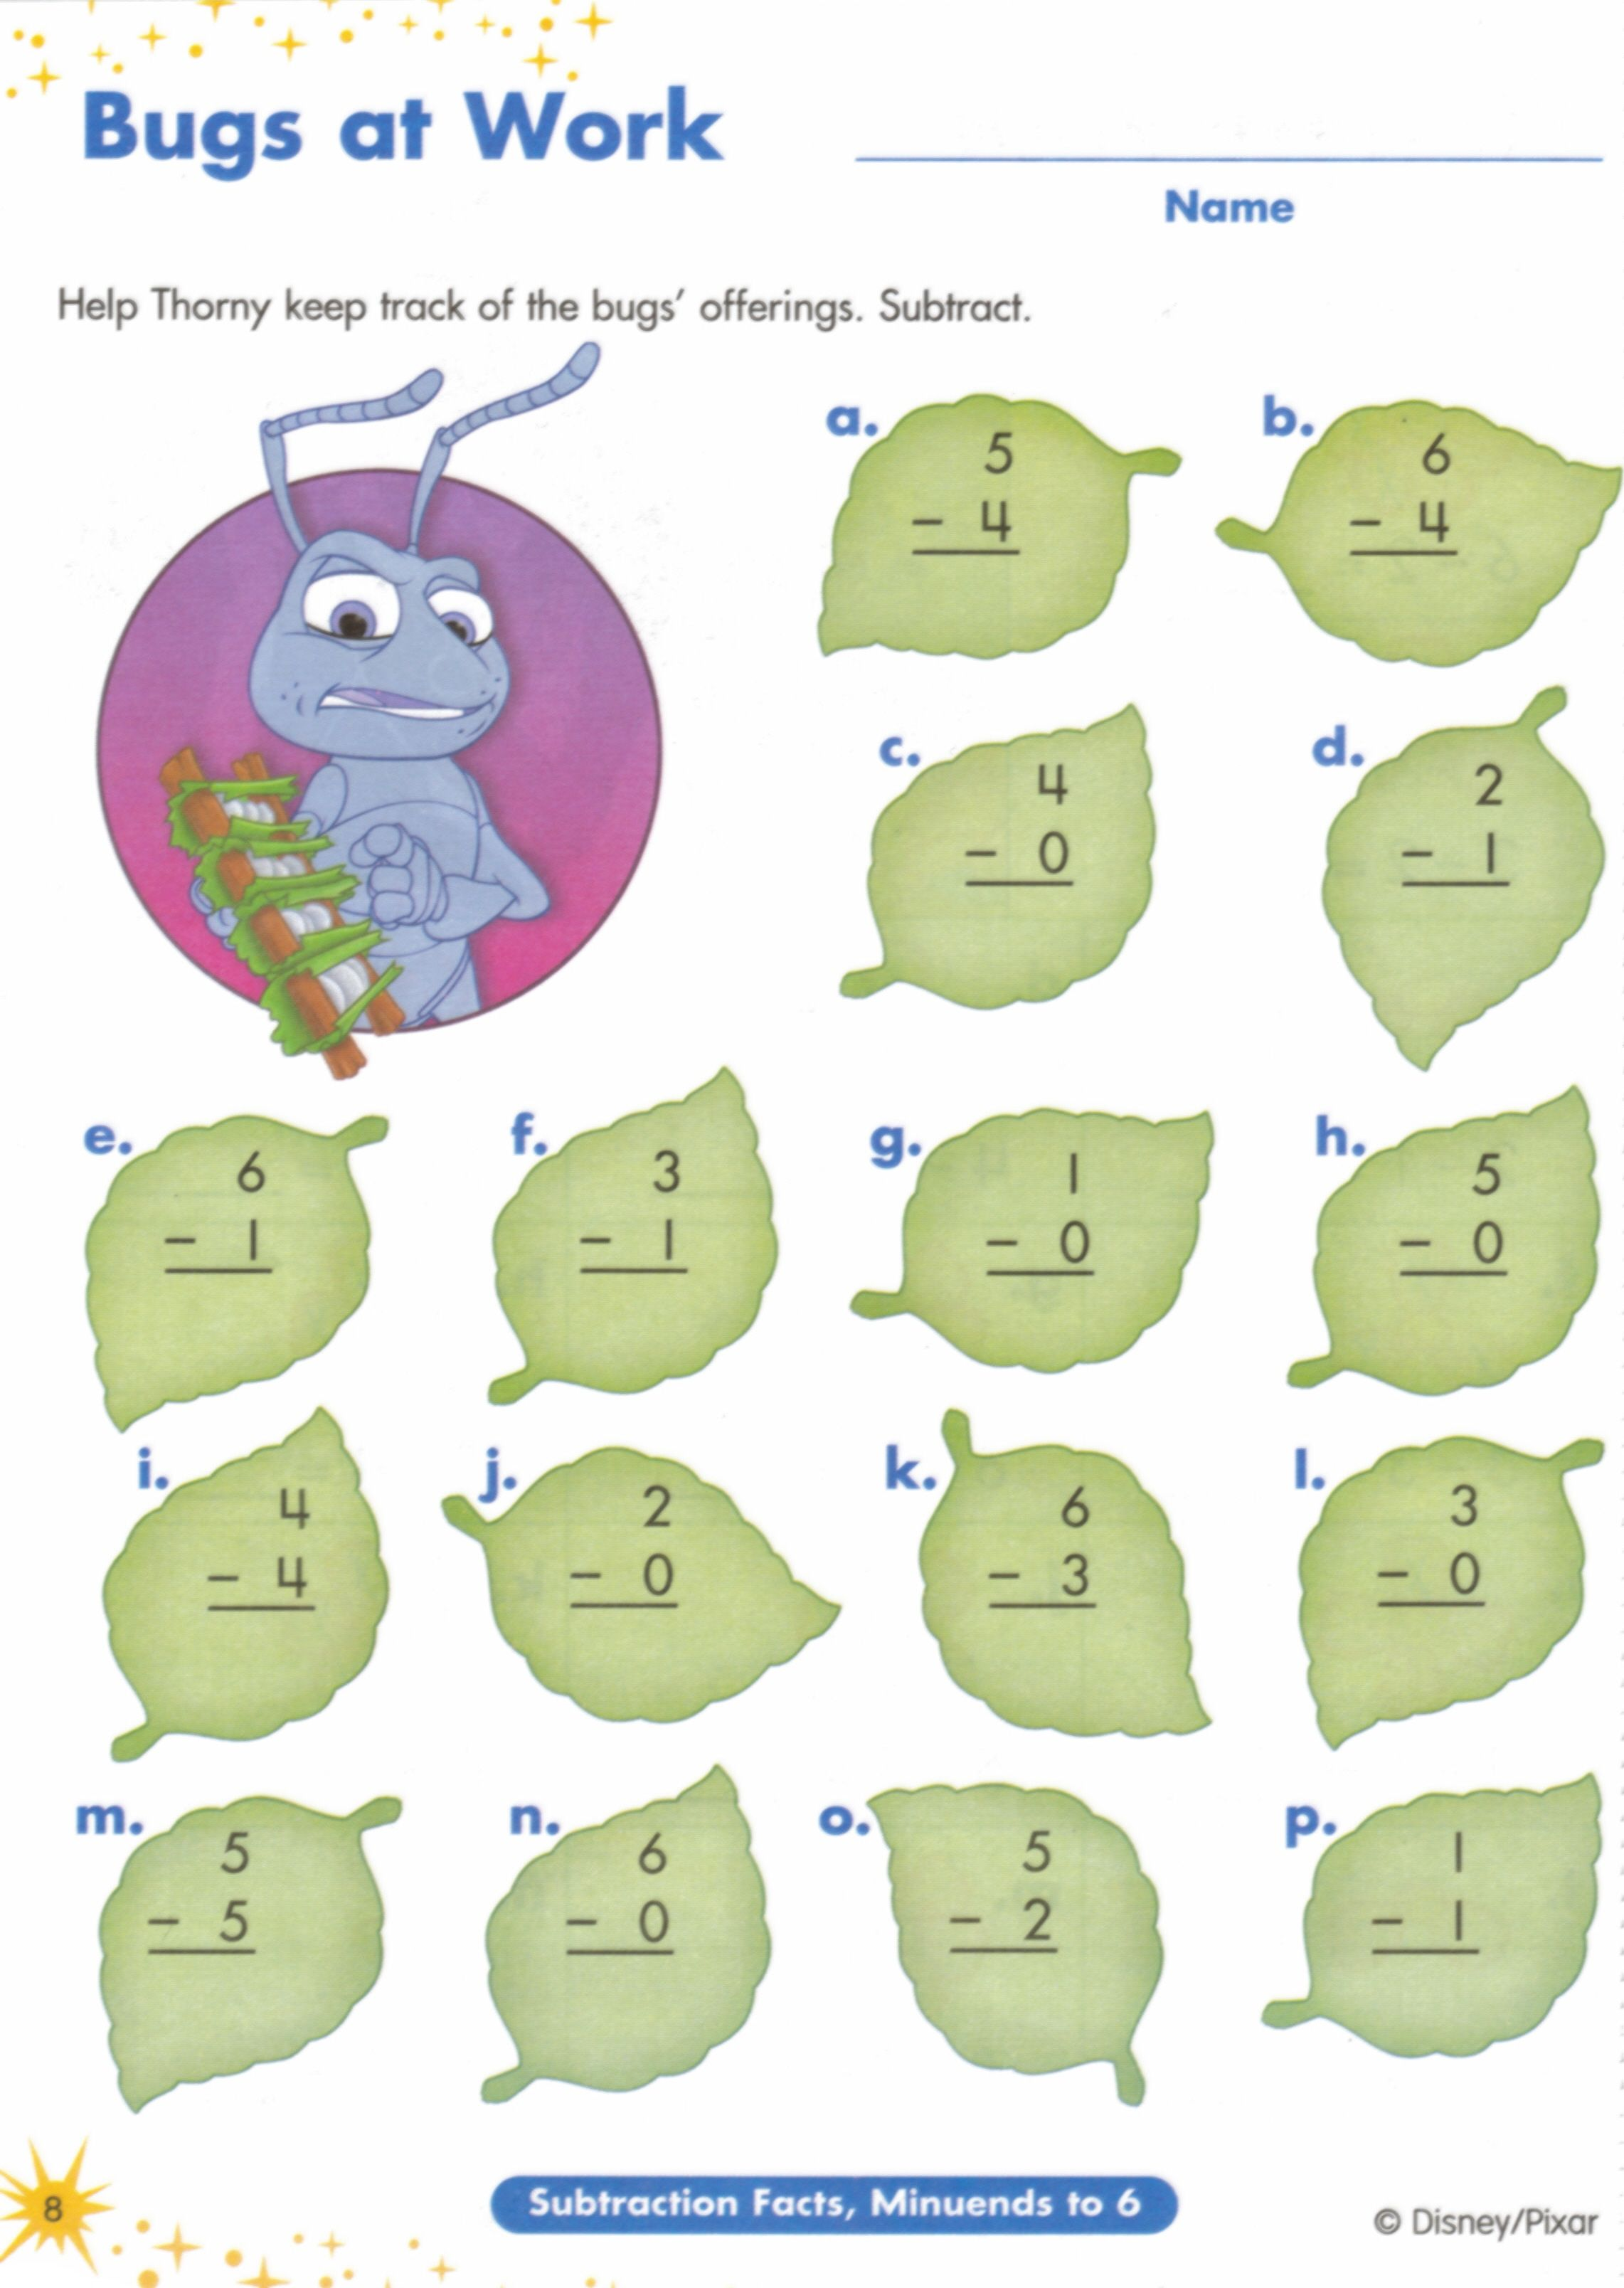 Proatmealus  Winning  Images About Worksheets On Pinterest  Fun Facts For Kids  With Remarkable  Images About Worksheets On Pinterest  Fun Facts For Kids Earth Day Worksheets And Jungles With Extraordinary Short And Long Vowel Worksheets For First Grade Also Mitosis Meiosis Comparison Worksheet In Addition Unlike Fractions Worksheets And Complex Equations Worksheet As Well As Free Scatter Plot Worksheets Additionally Goal Setting Worksheets For Kids From Pinterestcom With Proatmealus  Remarkable  Images About Worksheets On Pinterest  Fun Facts For Kids  With Extraordinary  Images About Worksheets On Pinterest  Fun Facts For Kids Earth Day Worksheets And Jungles And Winning Short And Long Vowel Worksheets For First Grade Also Mitosis Meiosis Comparison Worksheet In Addition Unlike Fractions Worksheets From Pinterestcom